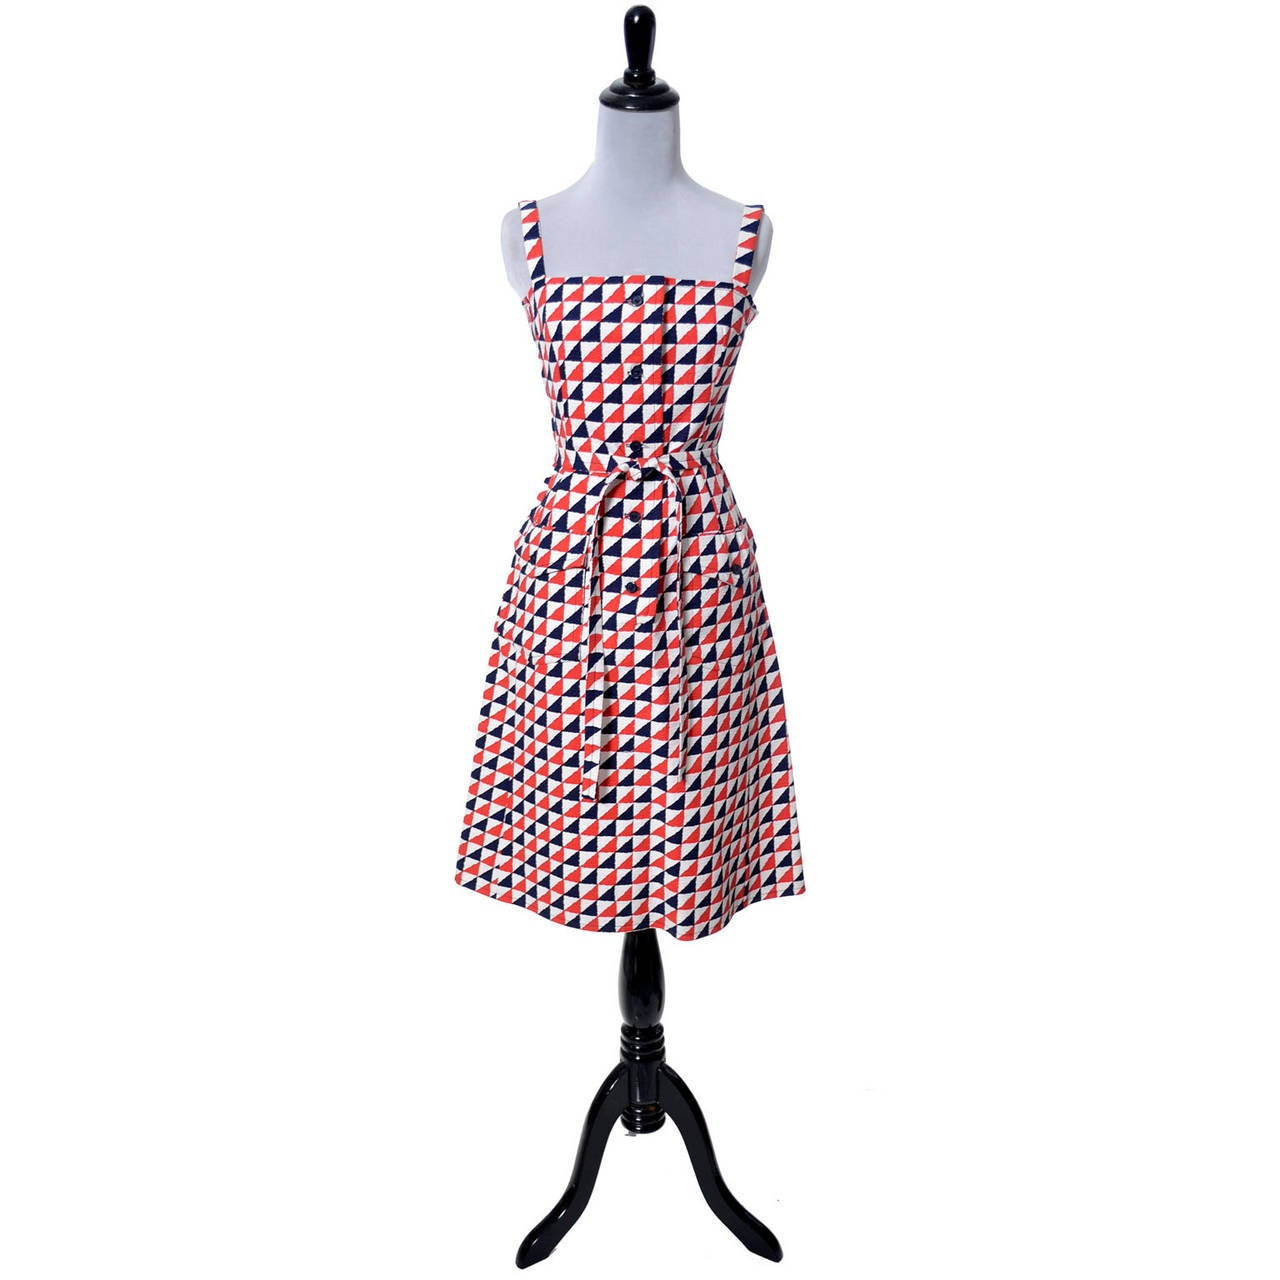 This is a wonderful Givenchy Nouvelle Boutique vintage dress from the 1970s in a red white and dark blue crisp structured cotton print.  This vintage dress appears to have never been worn and has front pockets and its original fabric belt.  I've